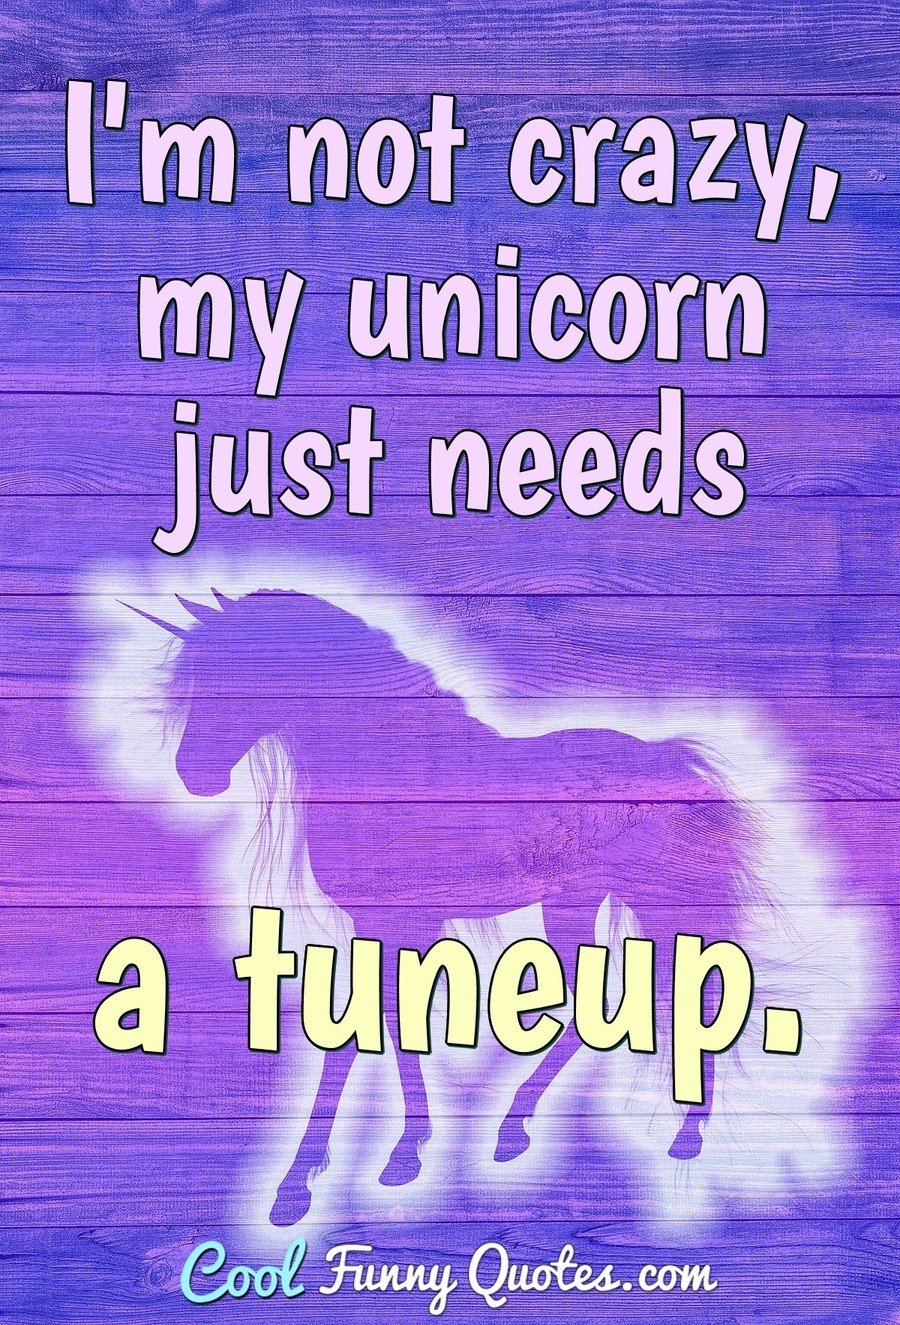 I'm not crazy, my unicorn just needs a tuneup.